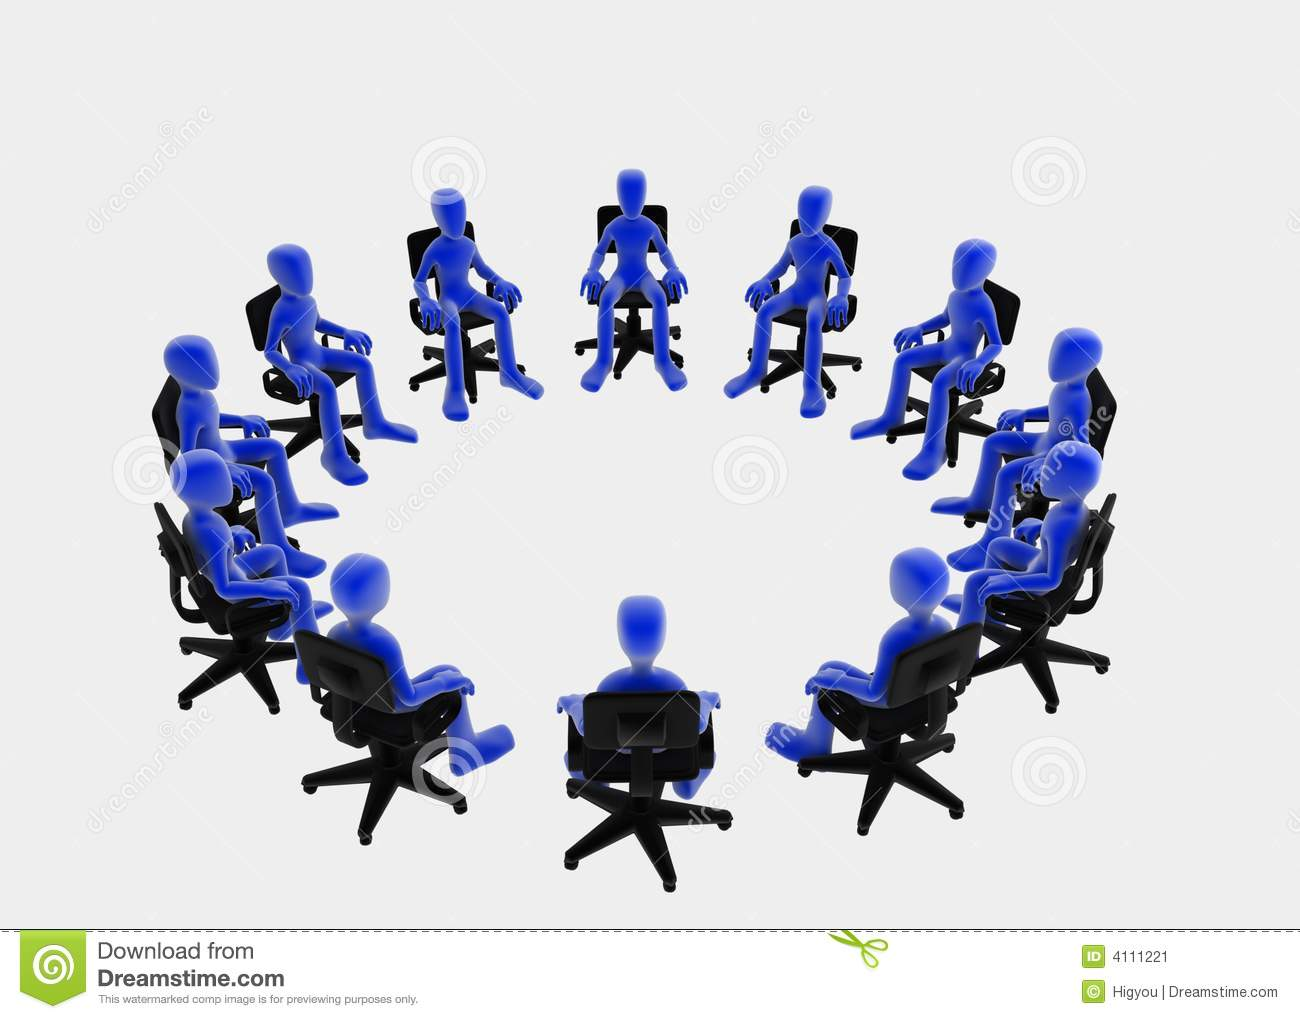 Twelve 3d figures sitting in a circle, blue over white background.